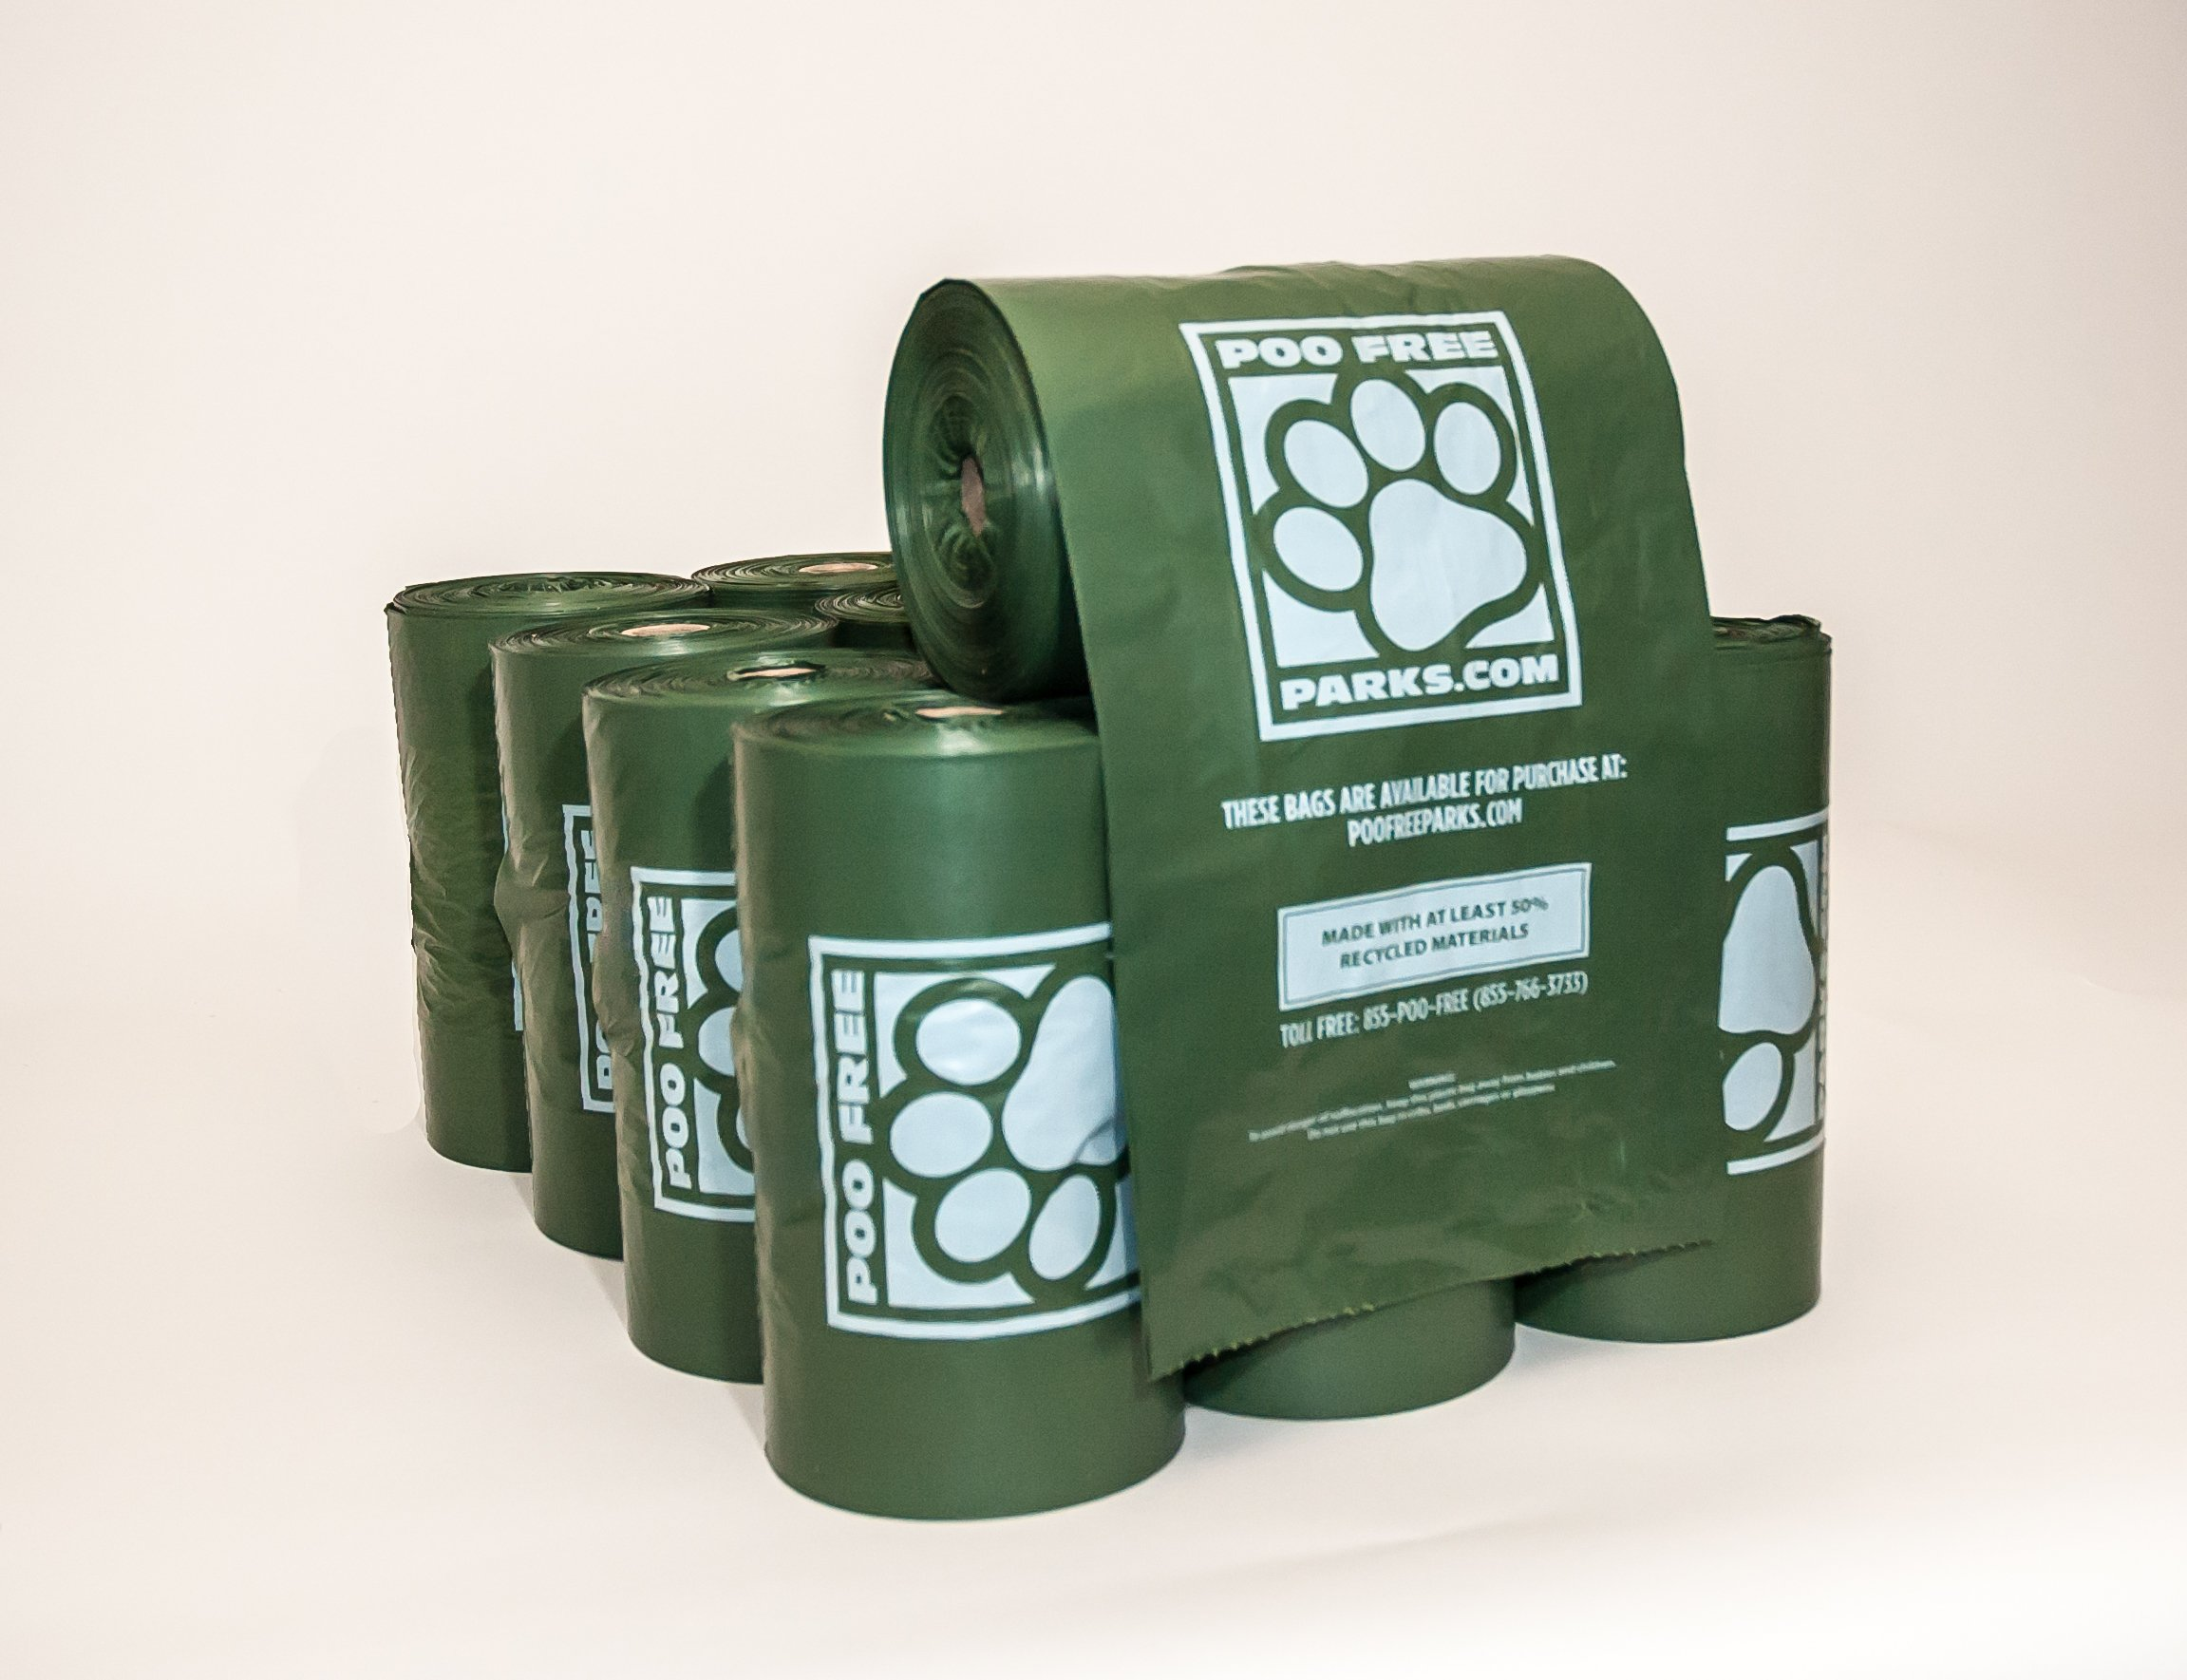 4,000 Extra Large Dog Poop Bags on 20 rolls - Poo Free Parks case of PFP200G